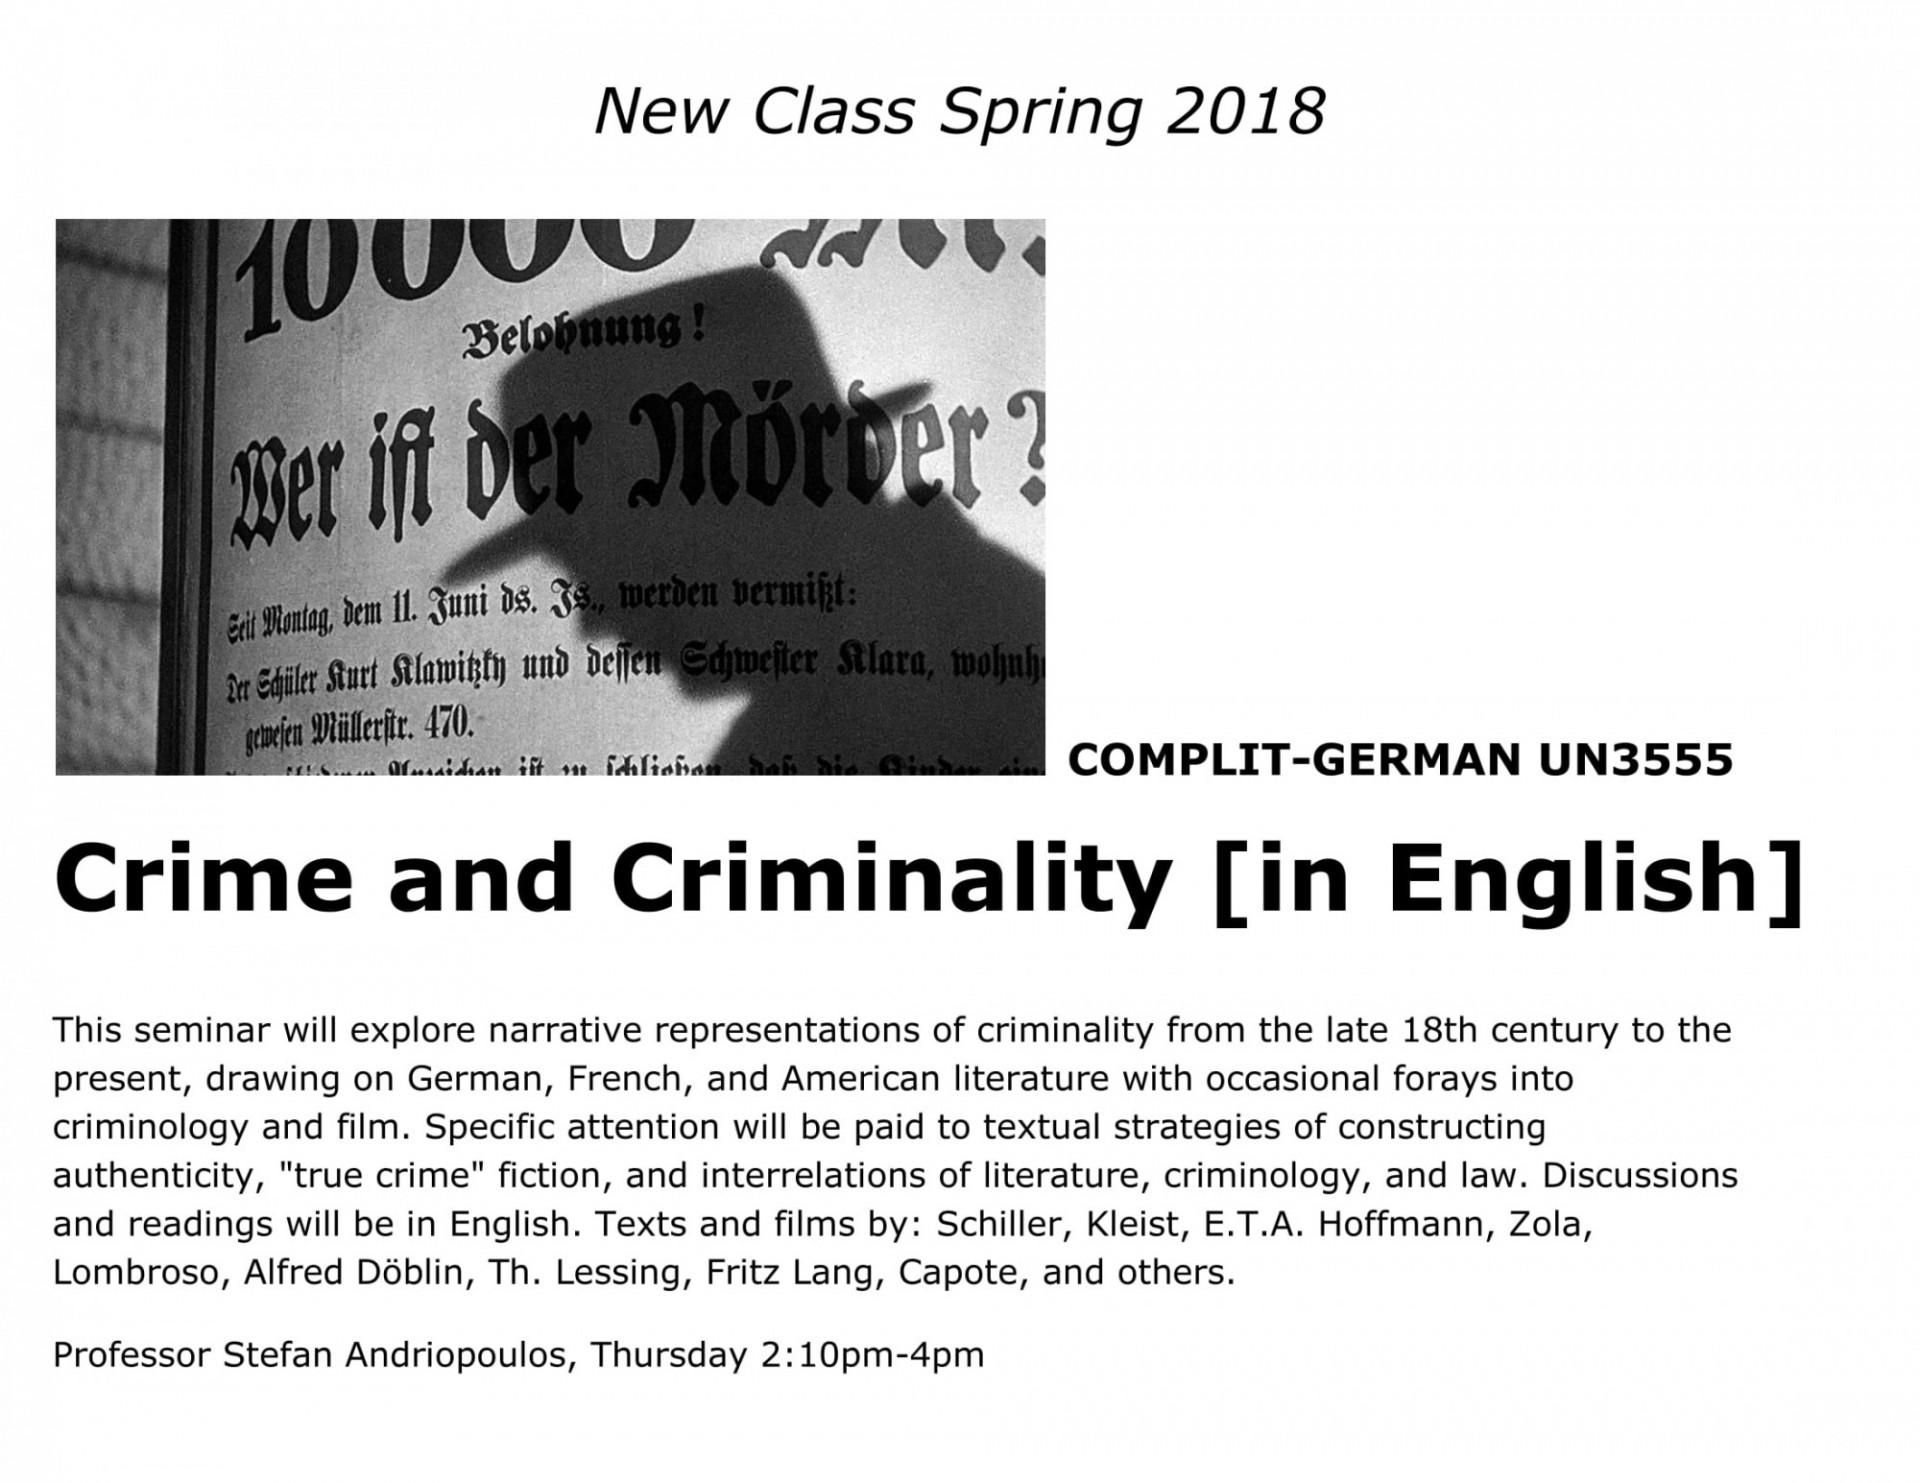 Crime and Criminality Course Poster